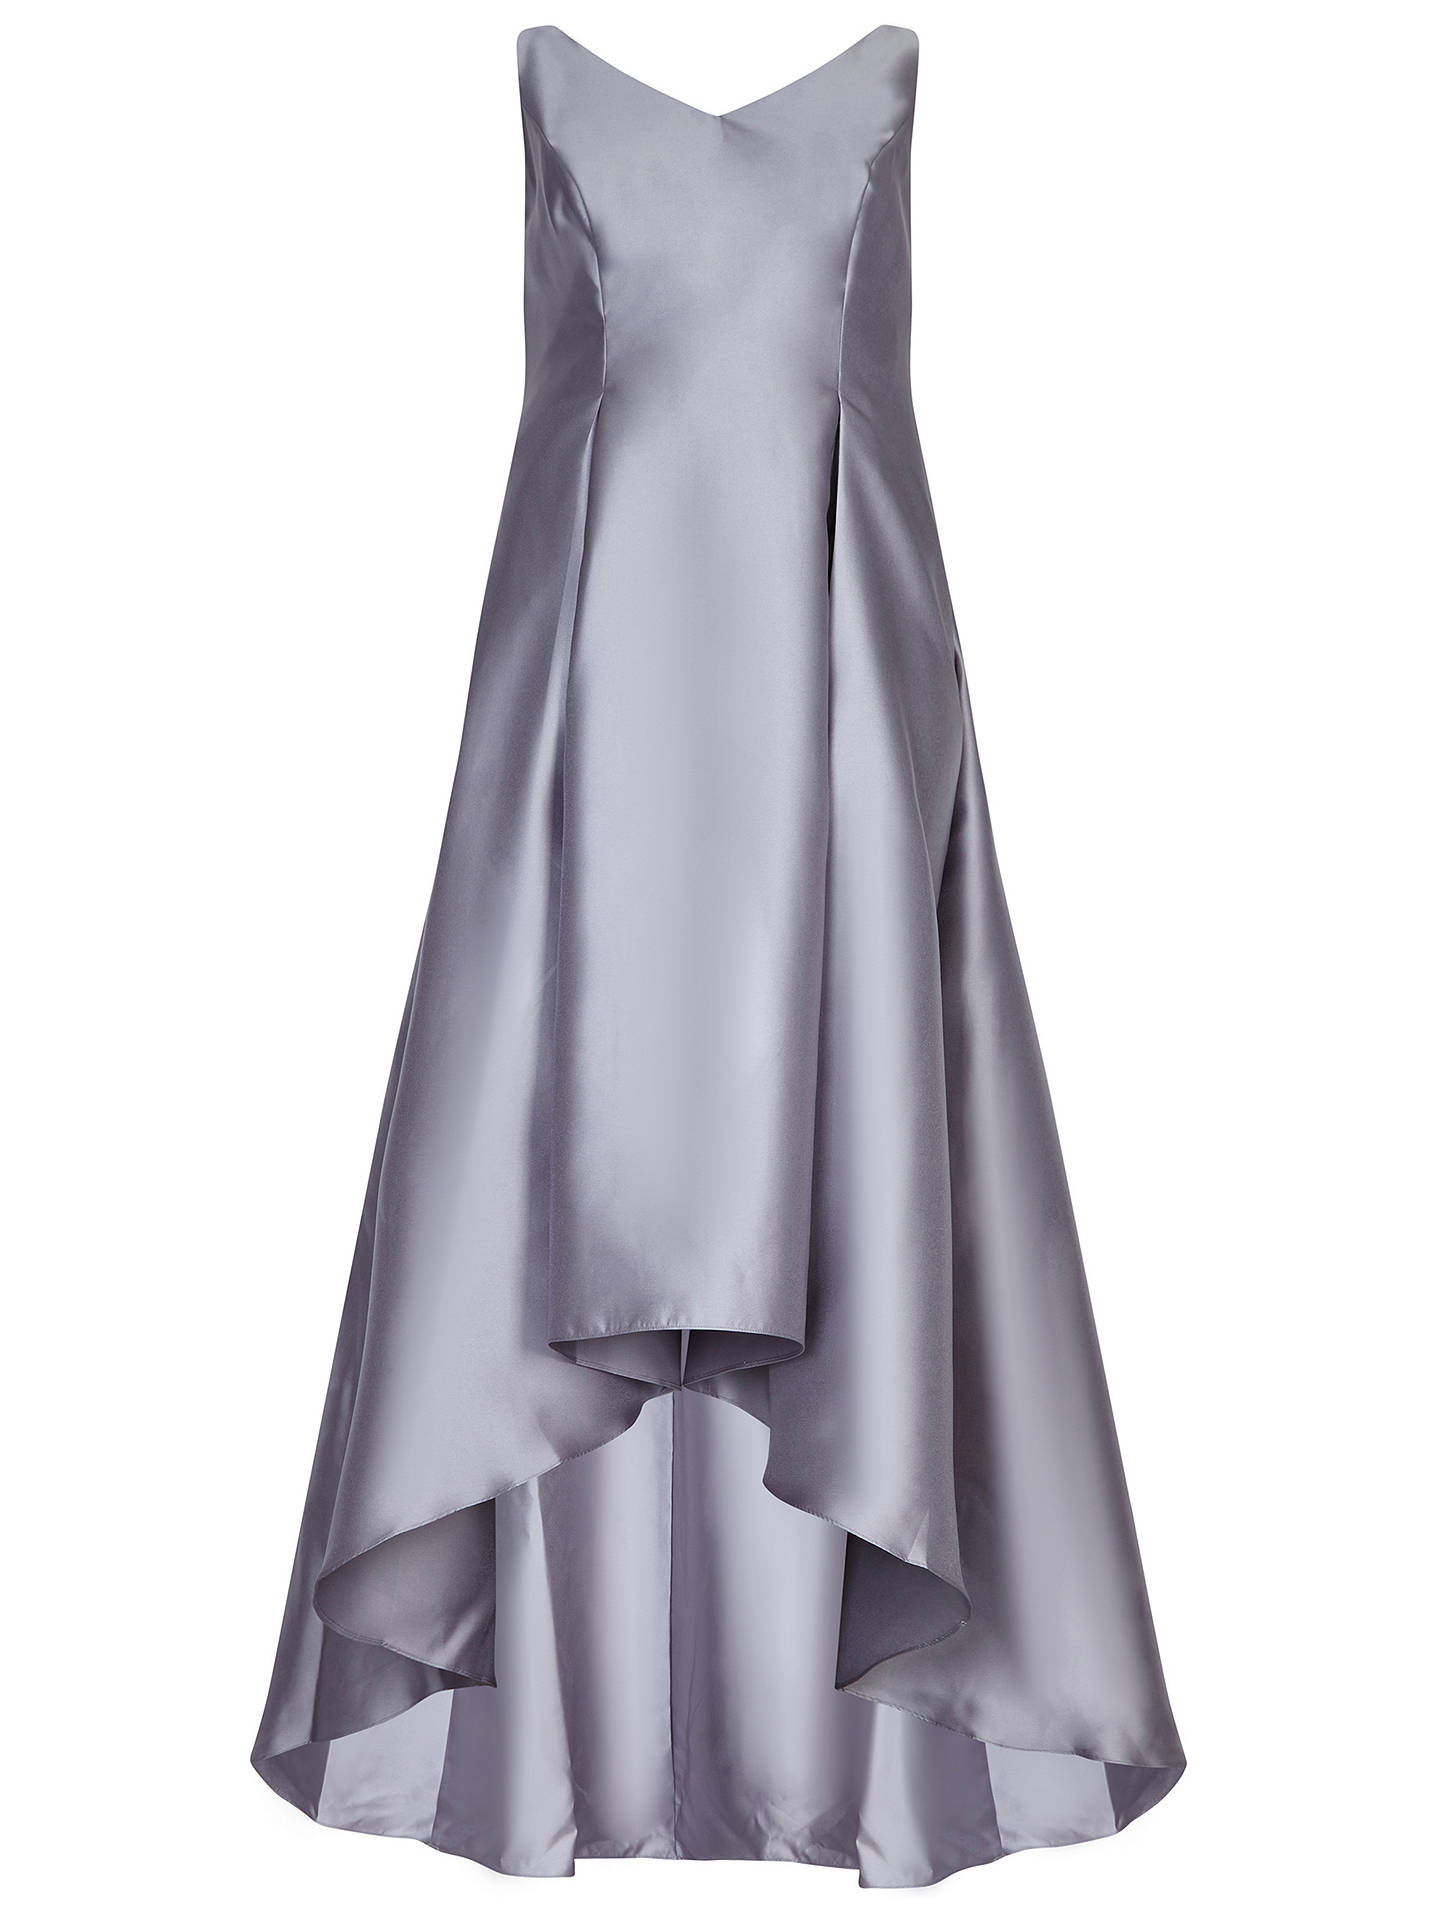 BuyAdrianna Papell Sleeveless Long Dress, Silver, 20 Online at johnlewis.com